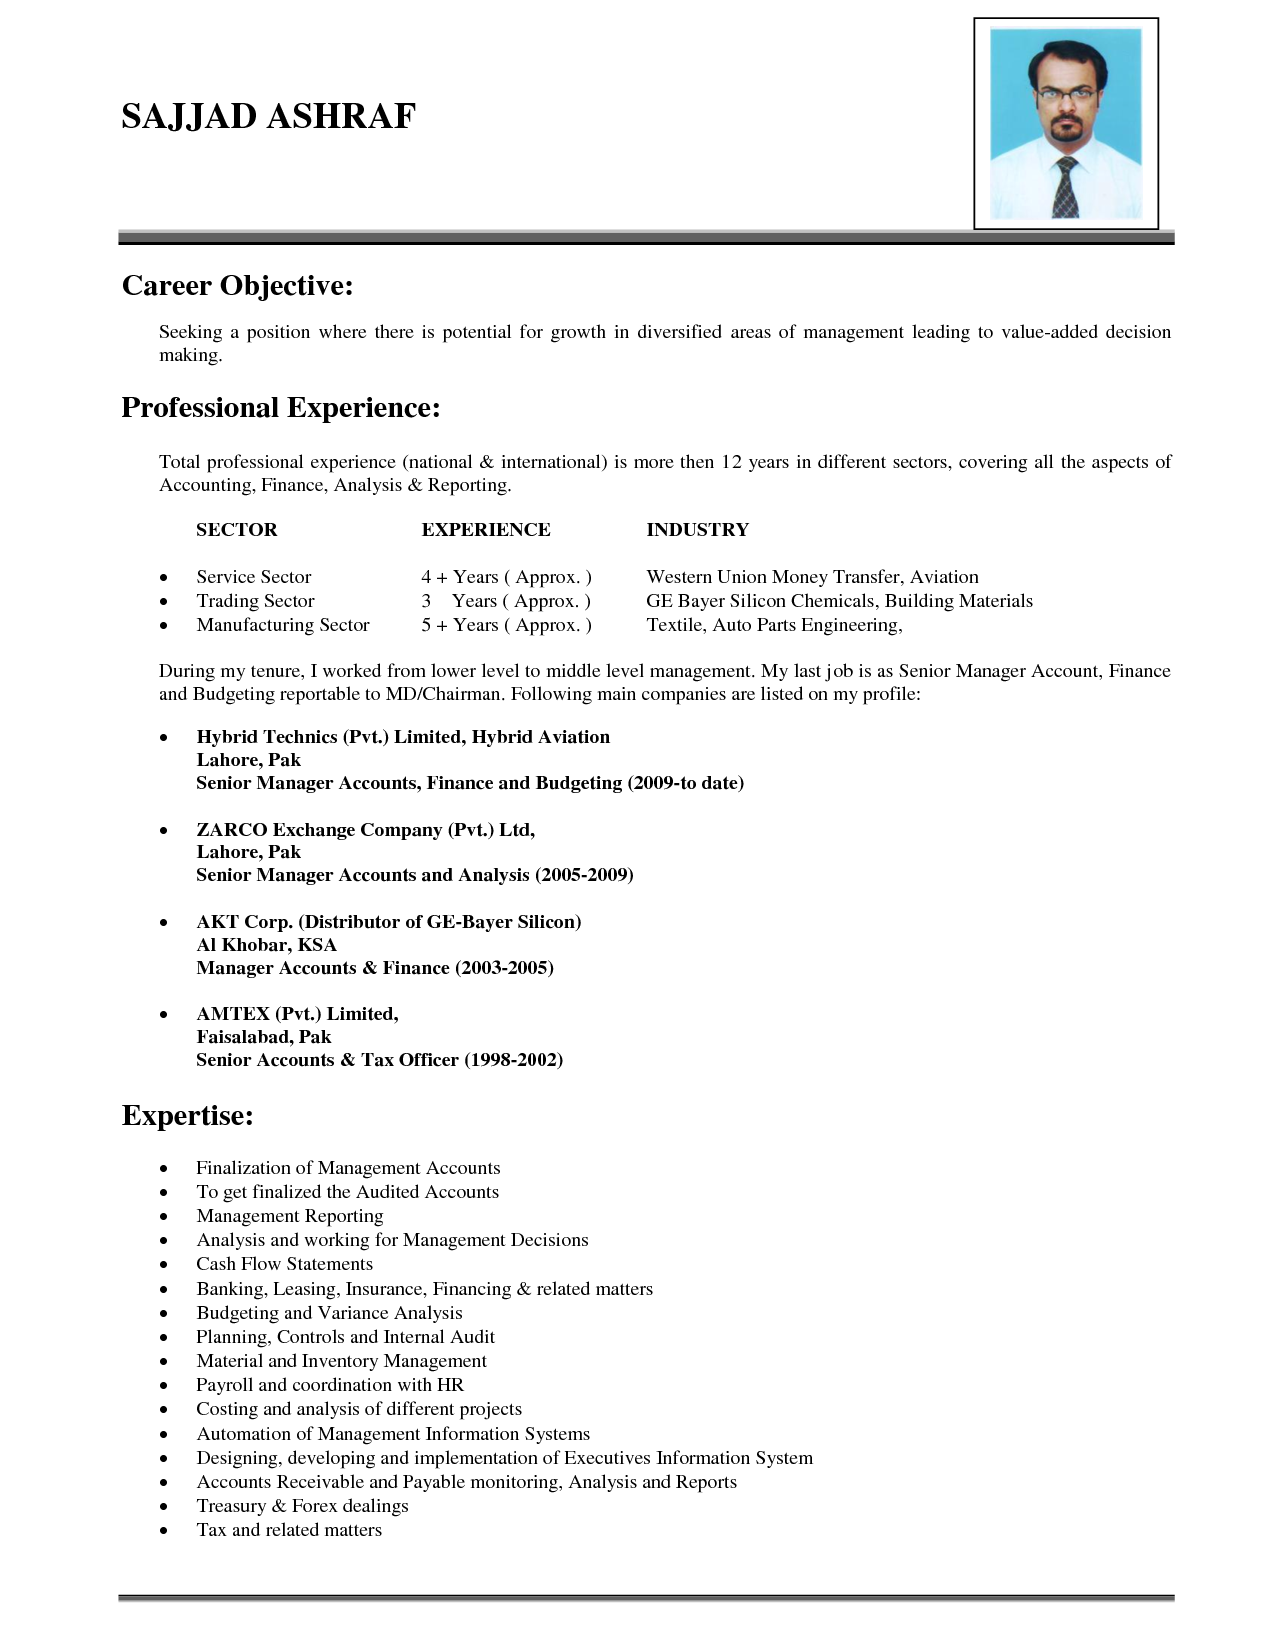 Samples of professional objectives for a resume